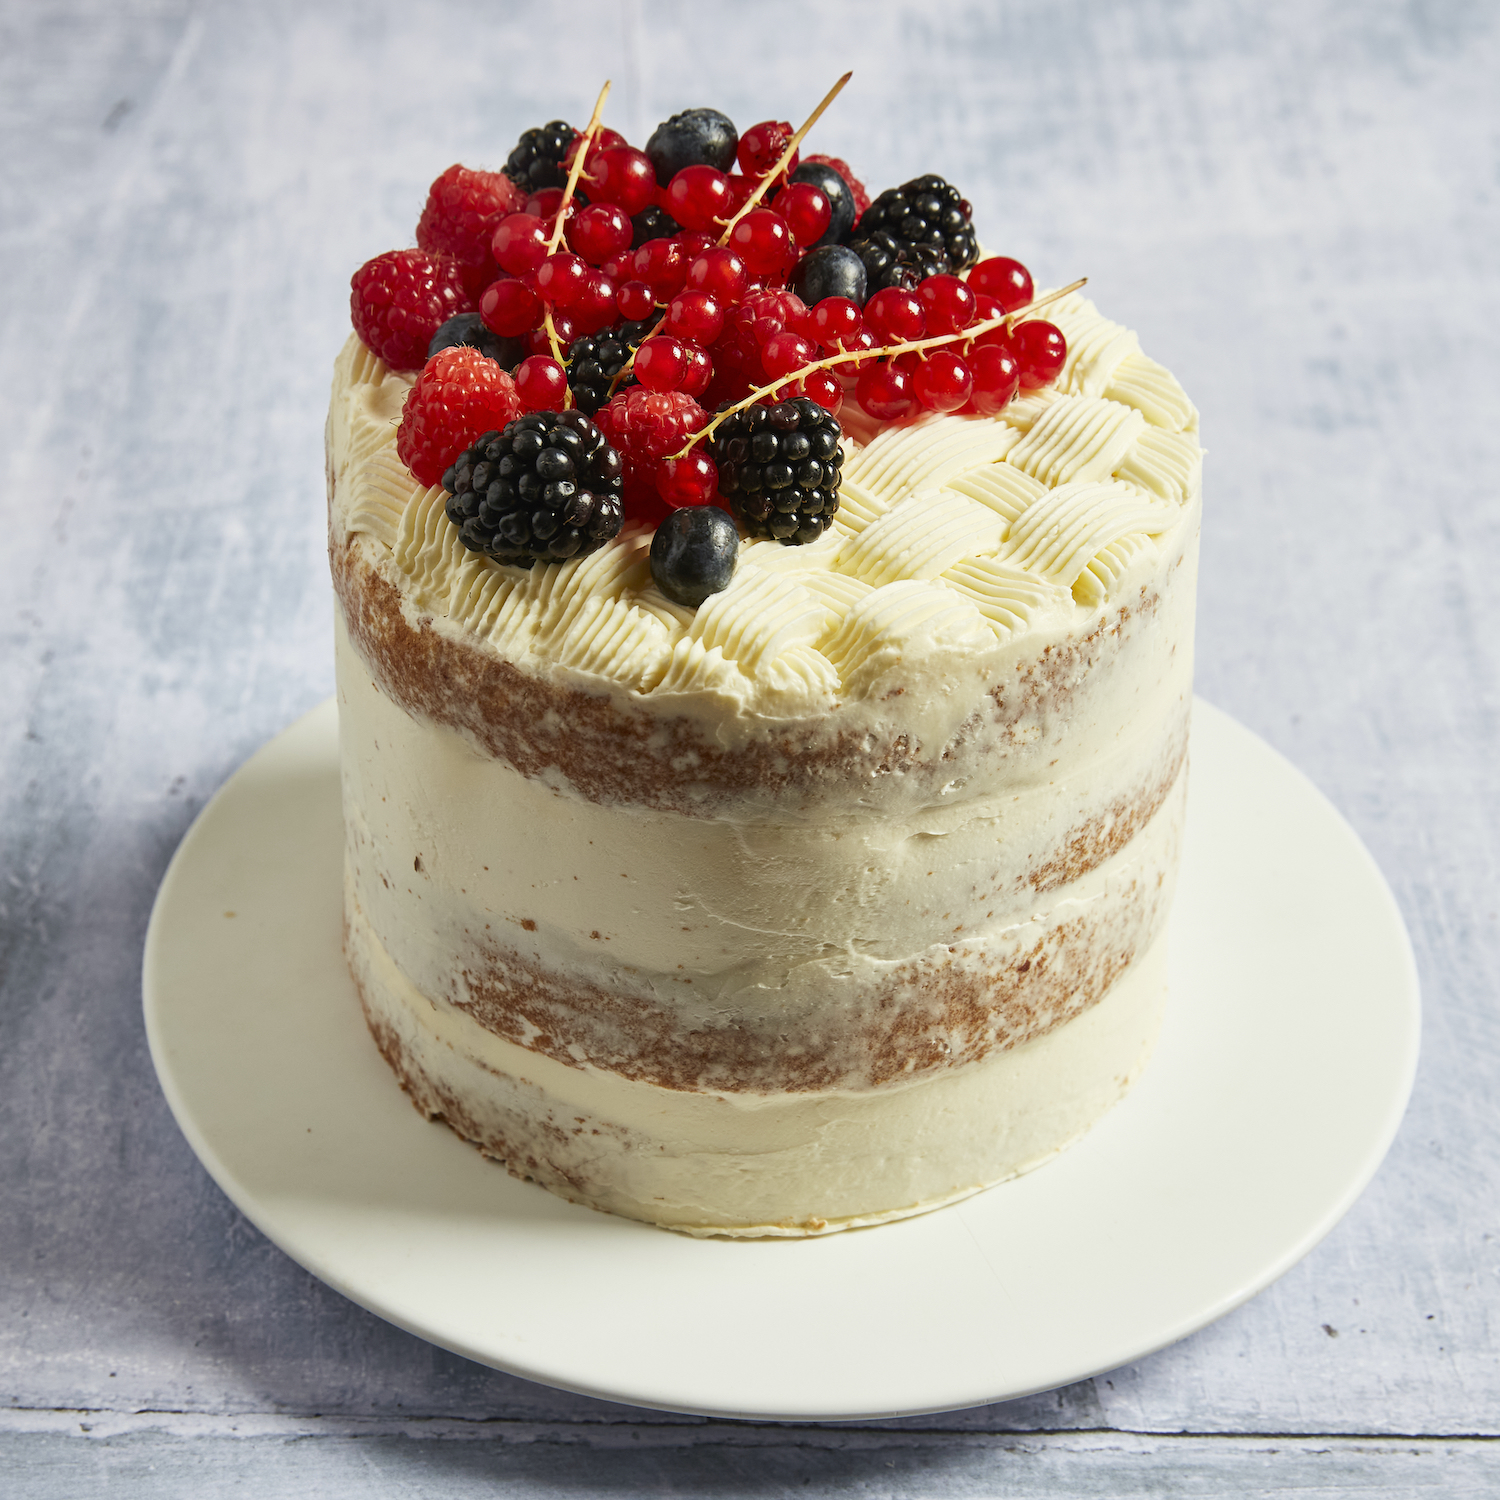 Semi-Naked Birthday Cake with Berries